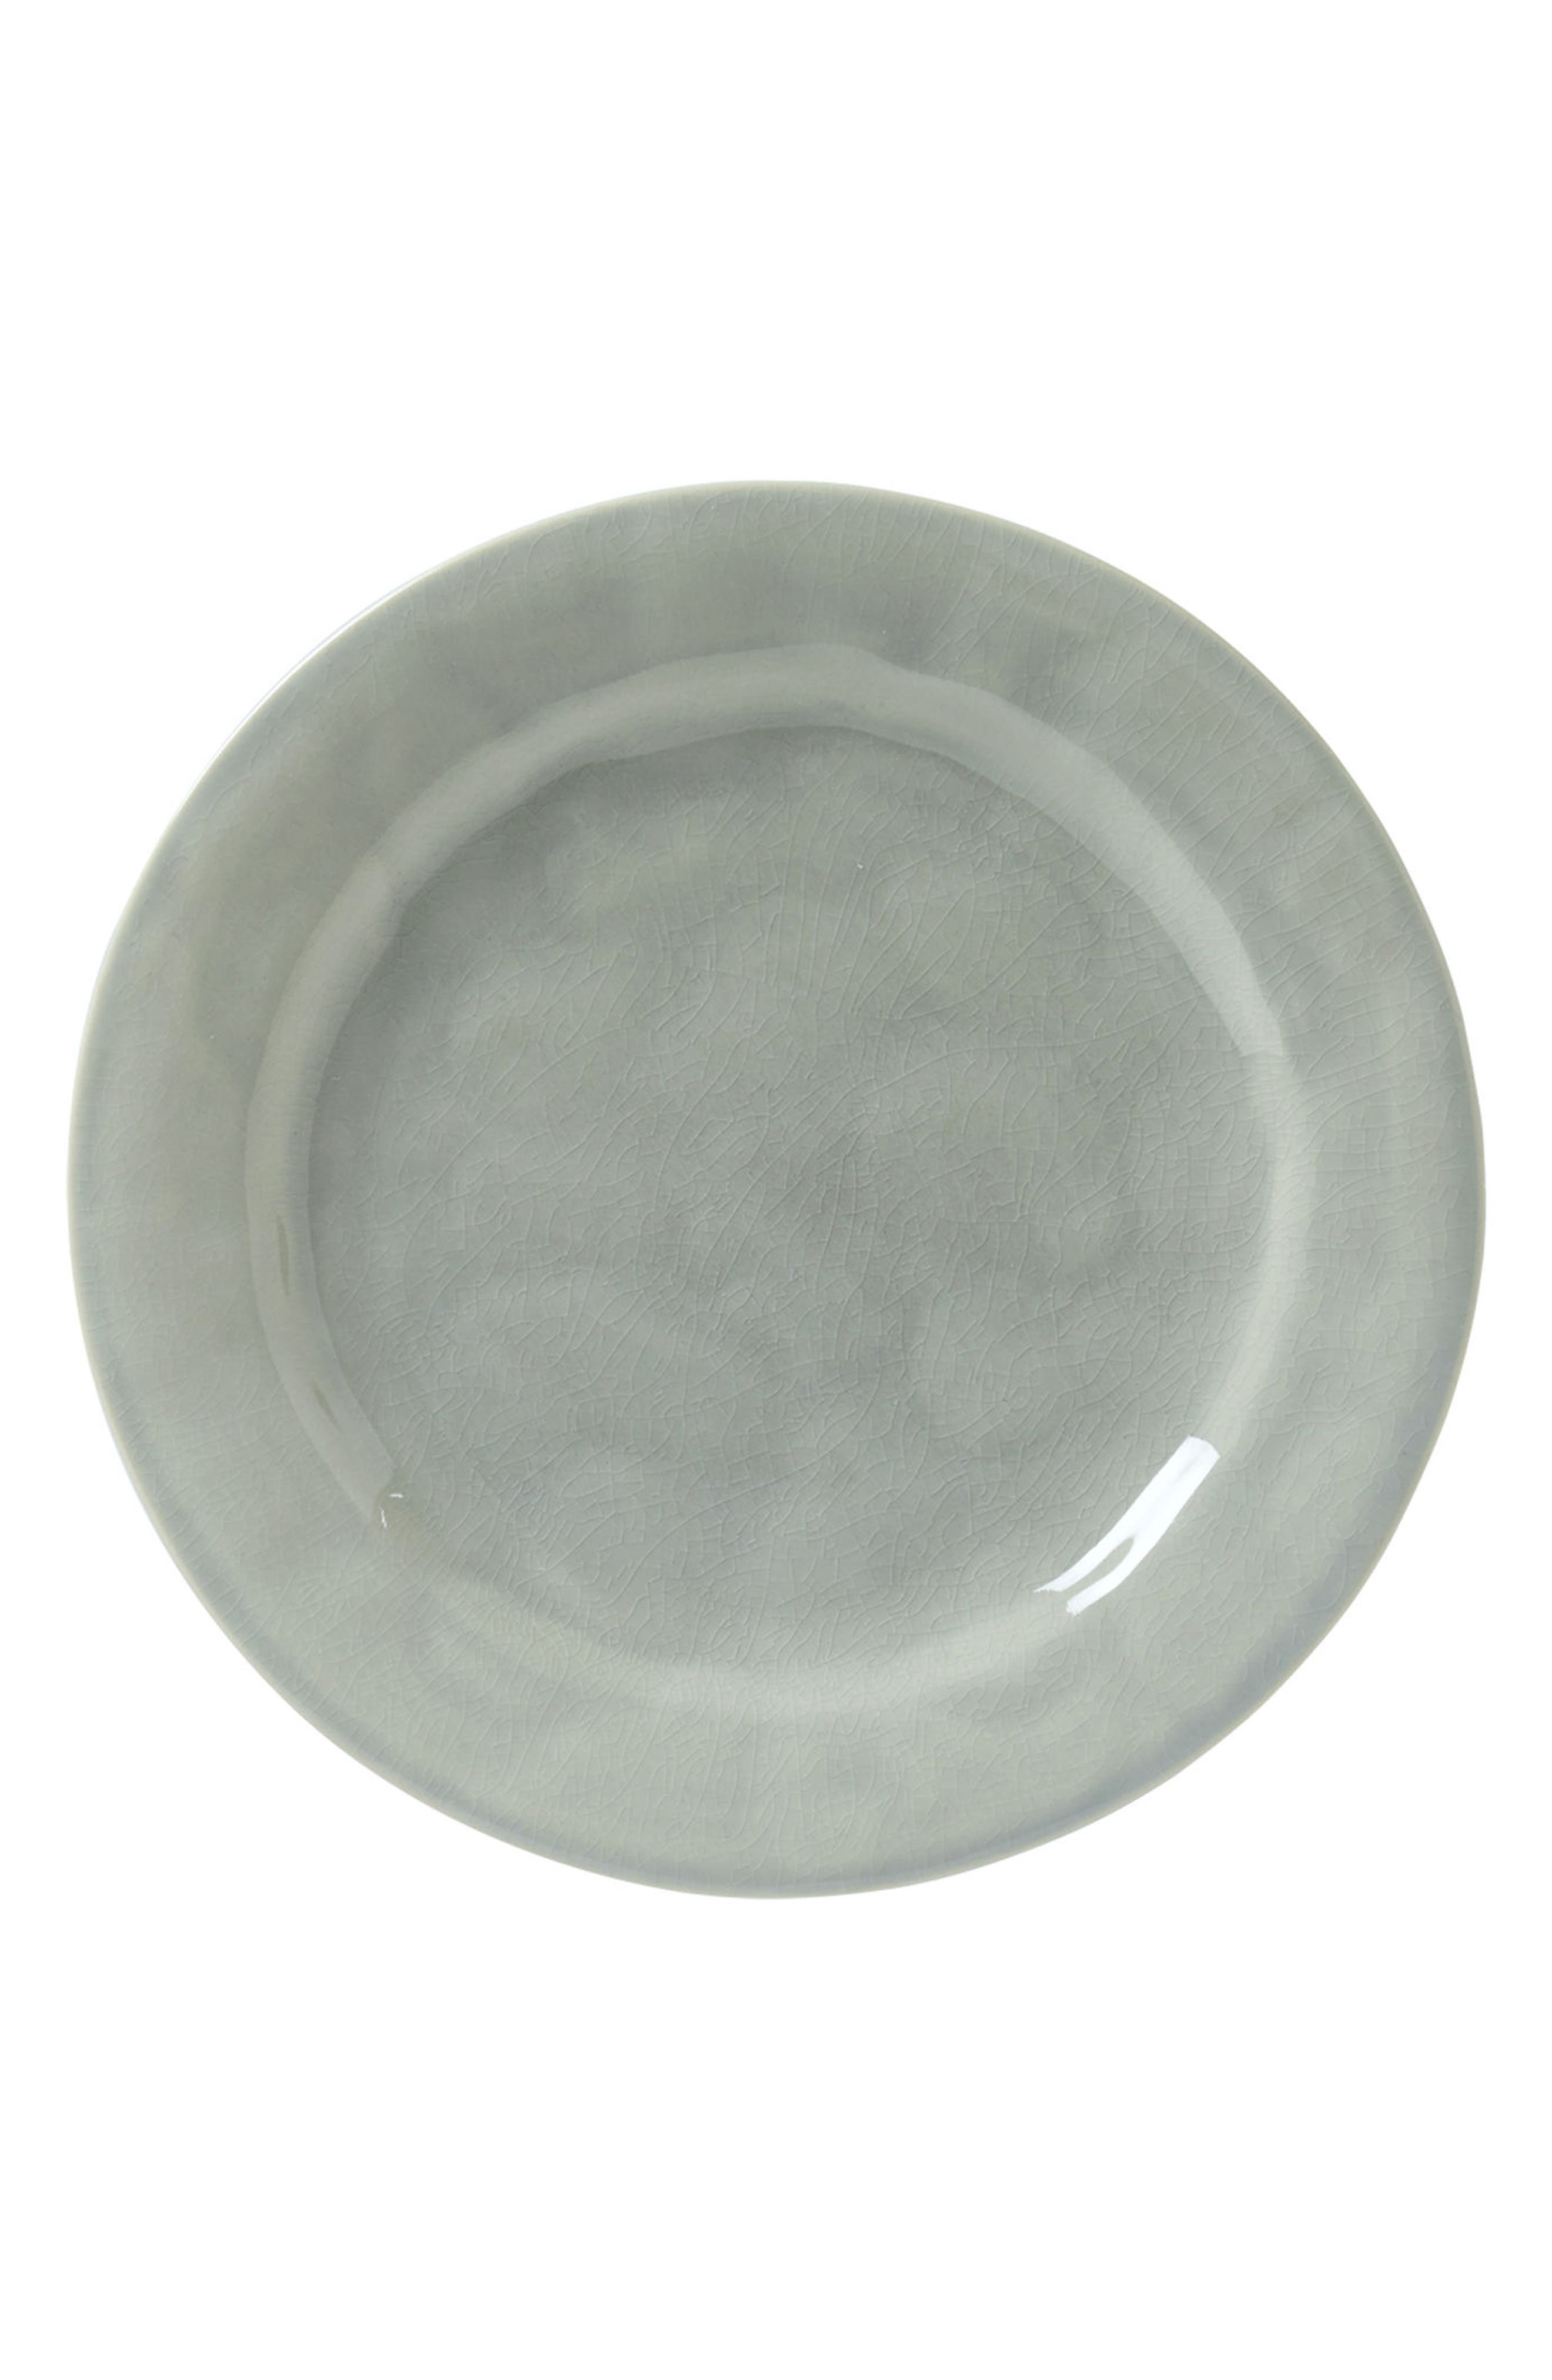 Puro Dinner Plate,                         Main,                         color, MIST GREY CRACKLE